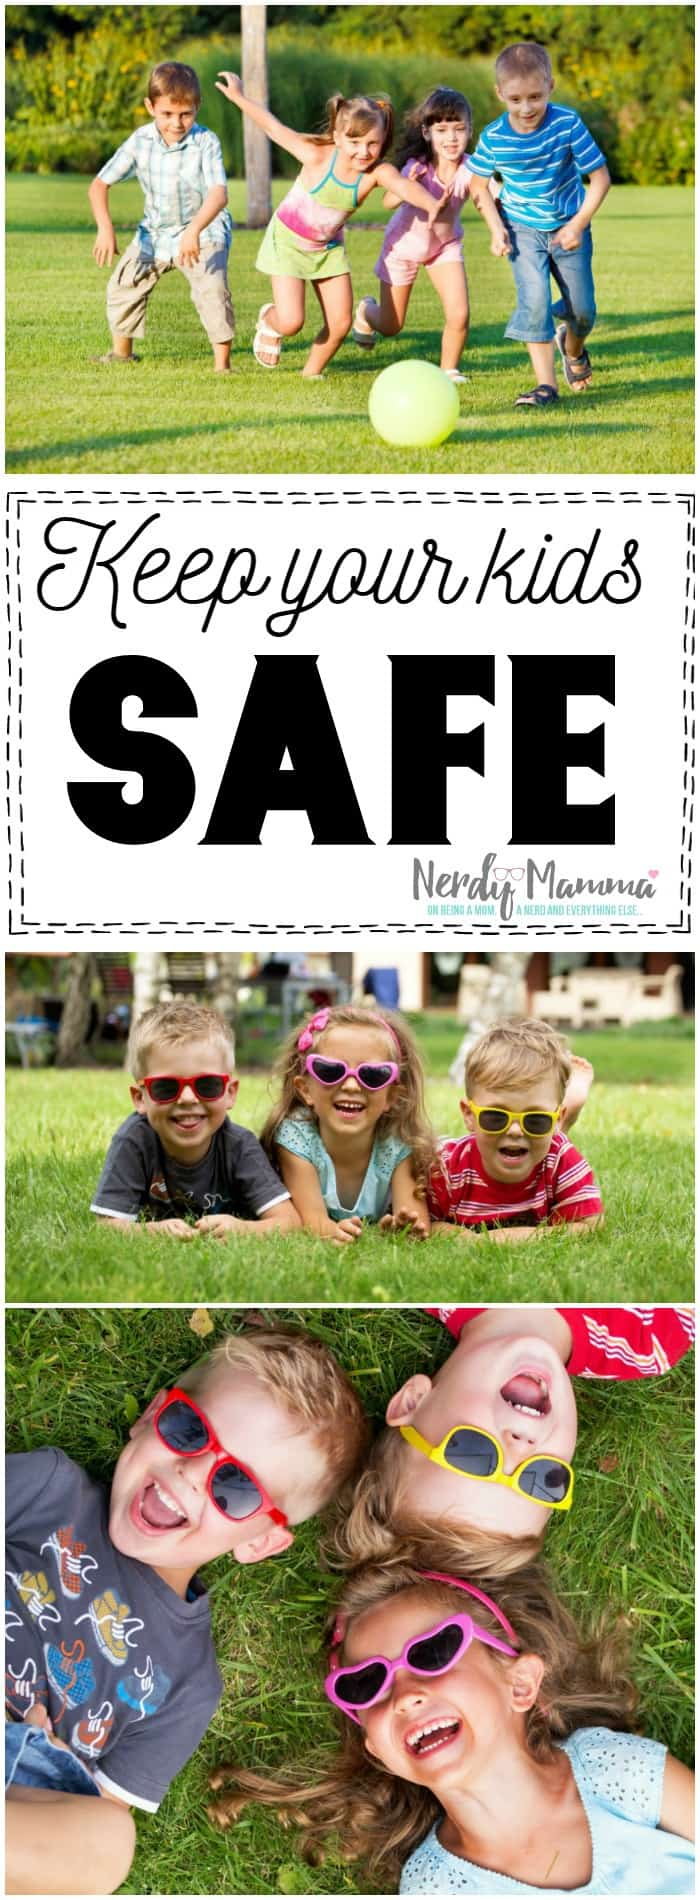 If I got this, I wouldn't need to be worried about where my kids are all the time. It's scary out there and I need to keep them safe.